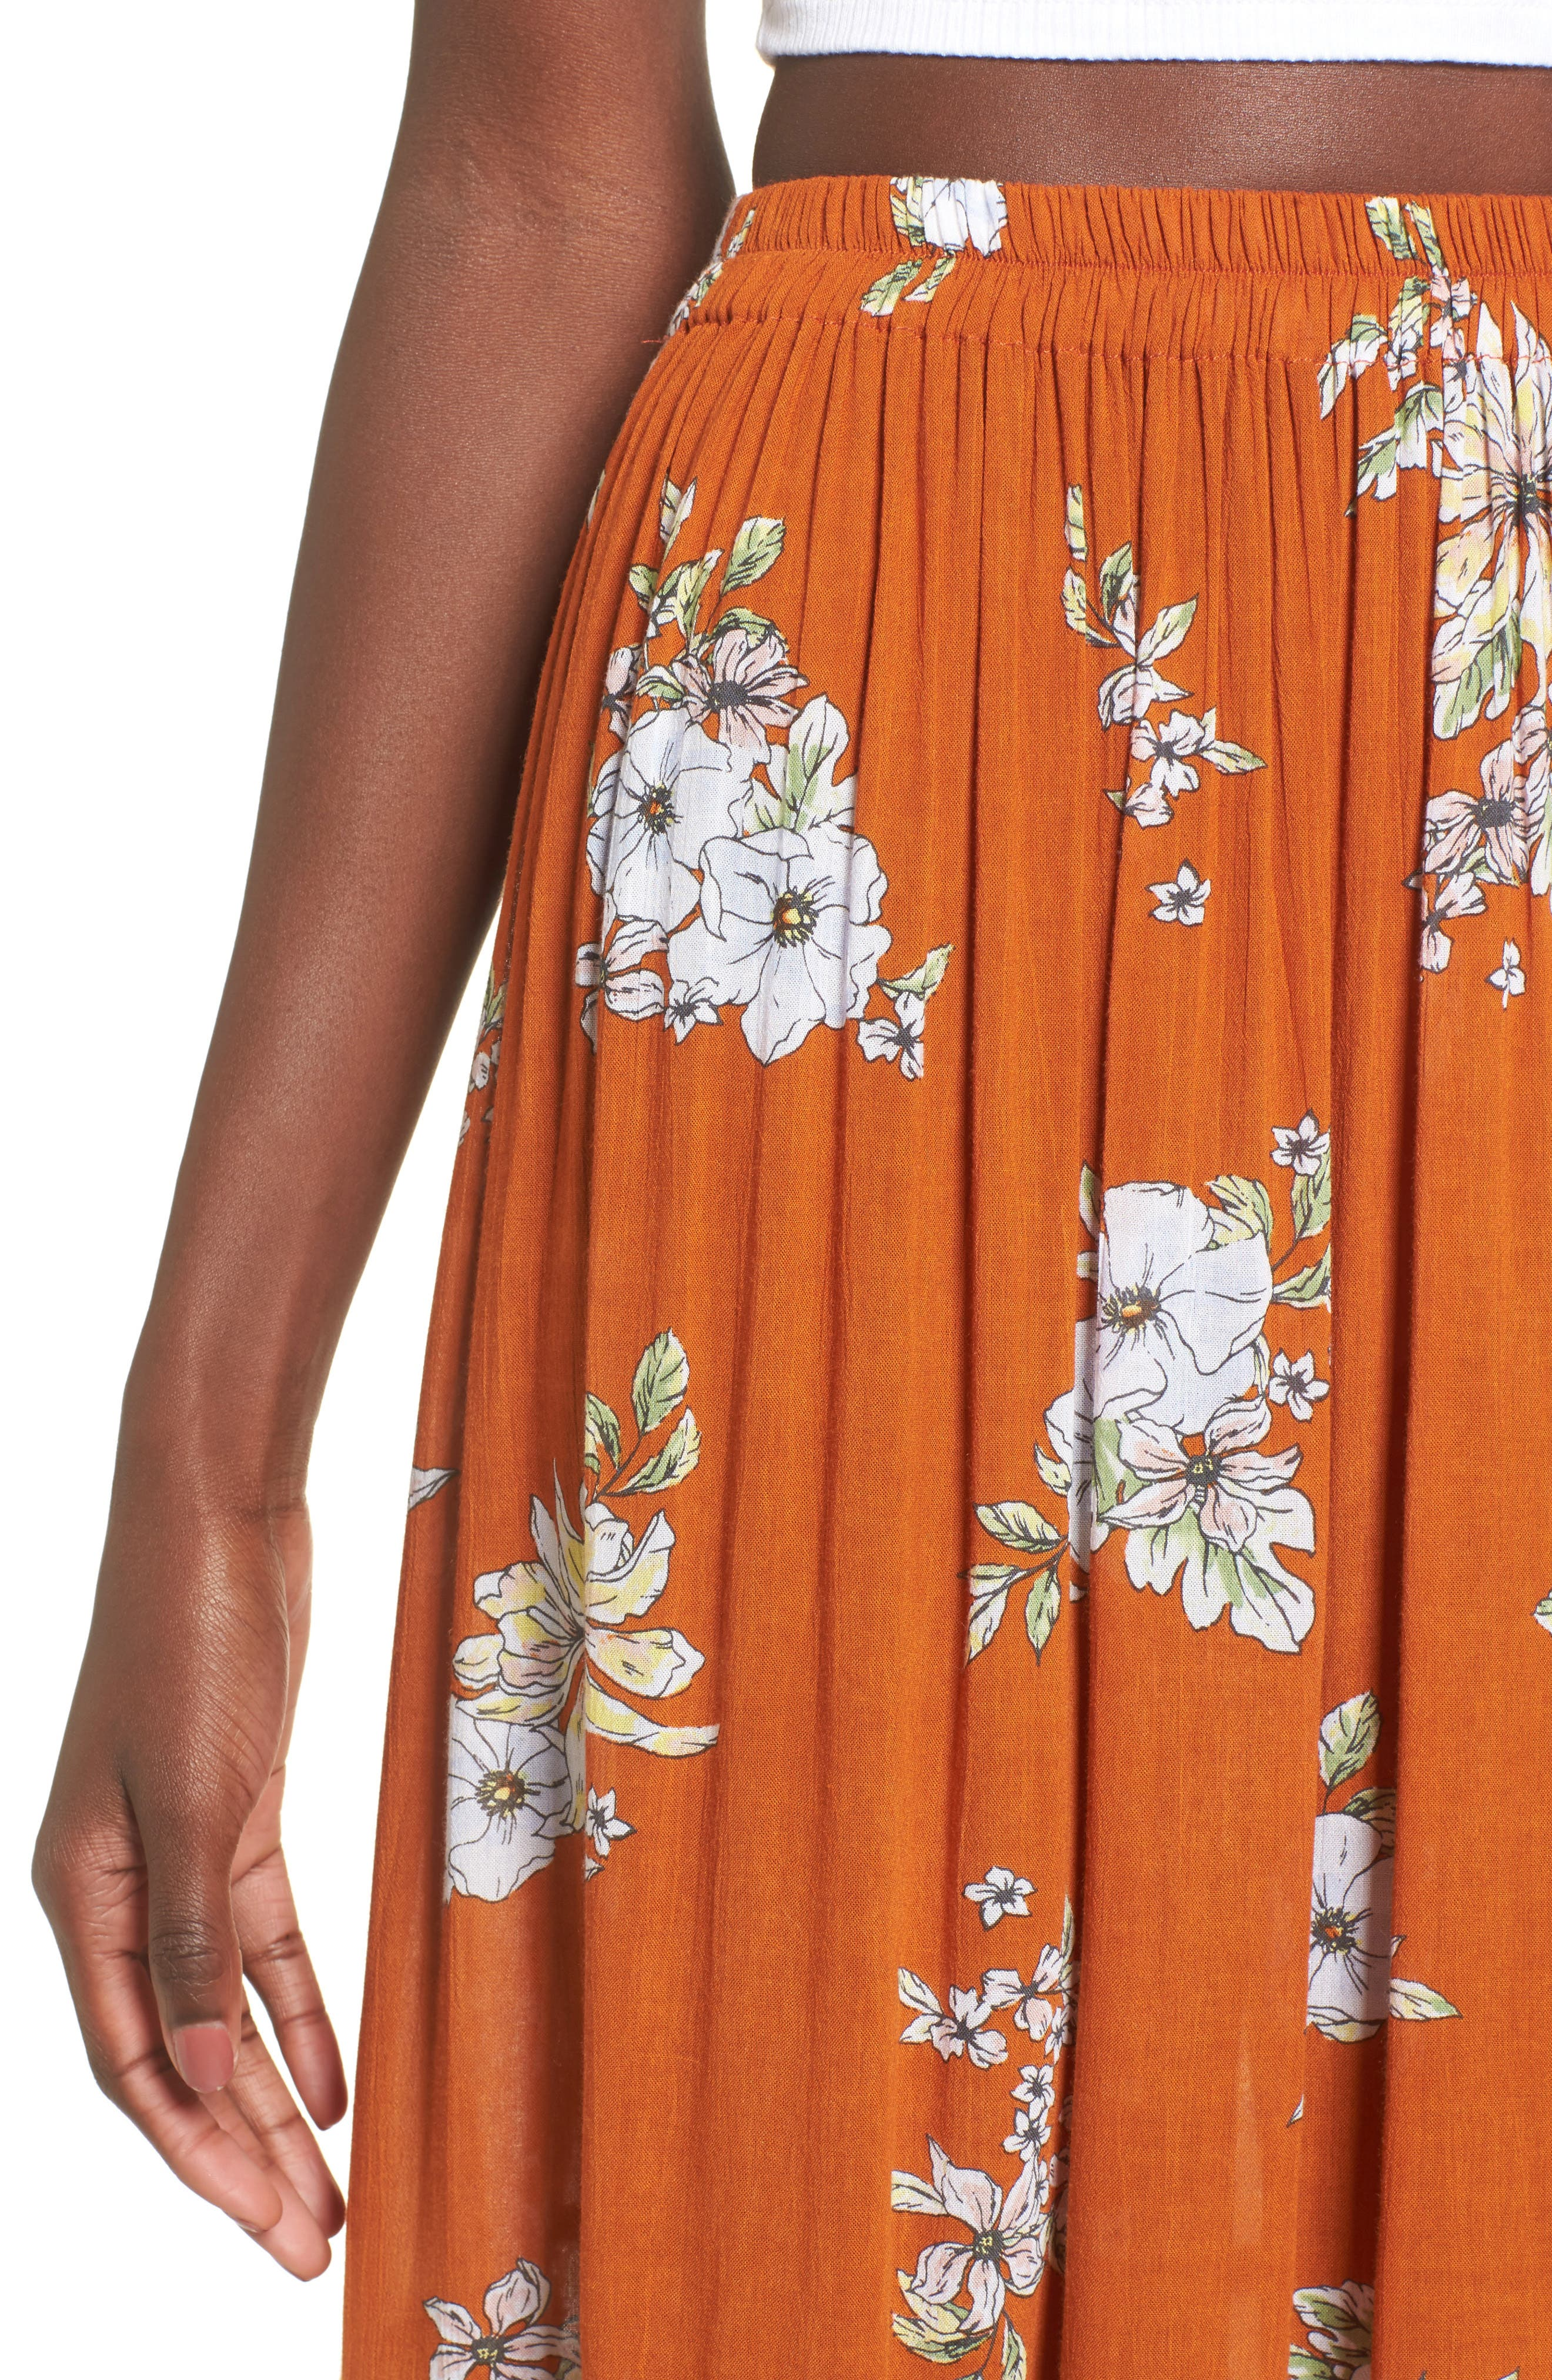 Rosewood Floral Tiered Skirt,                             Alternate thumbnail 4, color,